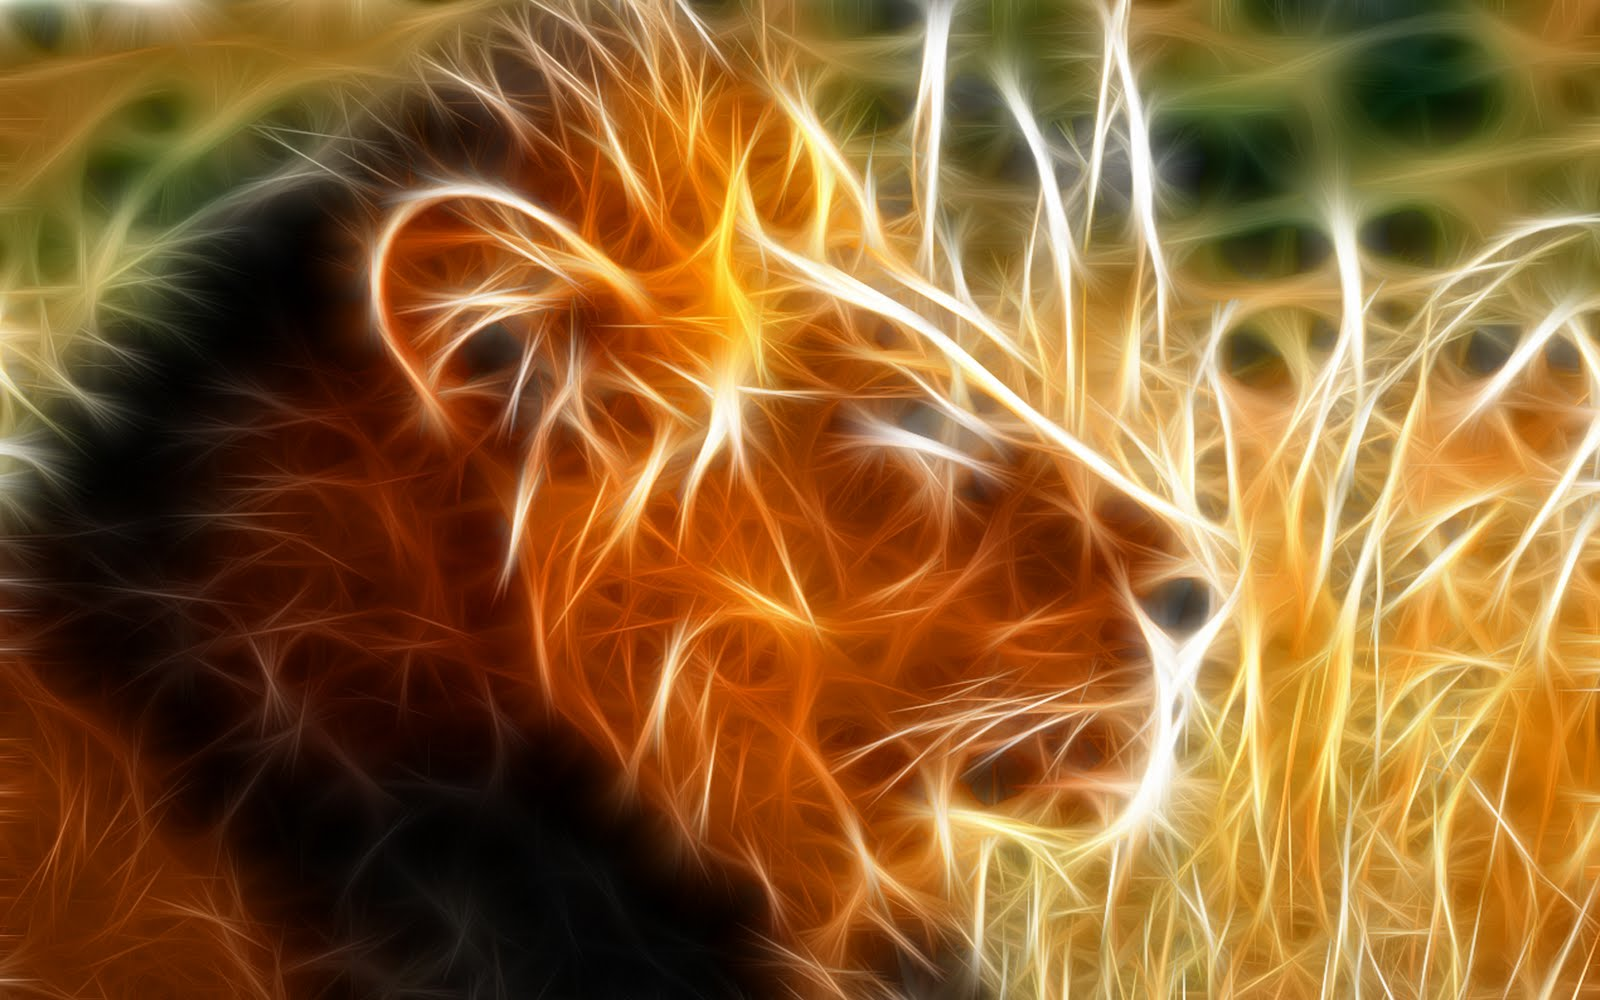 http://4.bp.blogspot.com/_2UbsSBz9ckE/Sw7kguVRrRI/AAAAAAAAAdU/nE6MFPvloDY/s1600/The_King_lion_hd_wallpapers.jpg